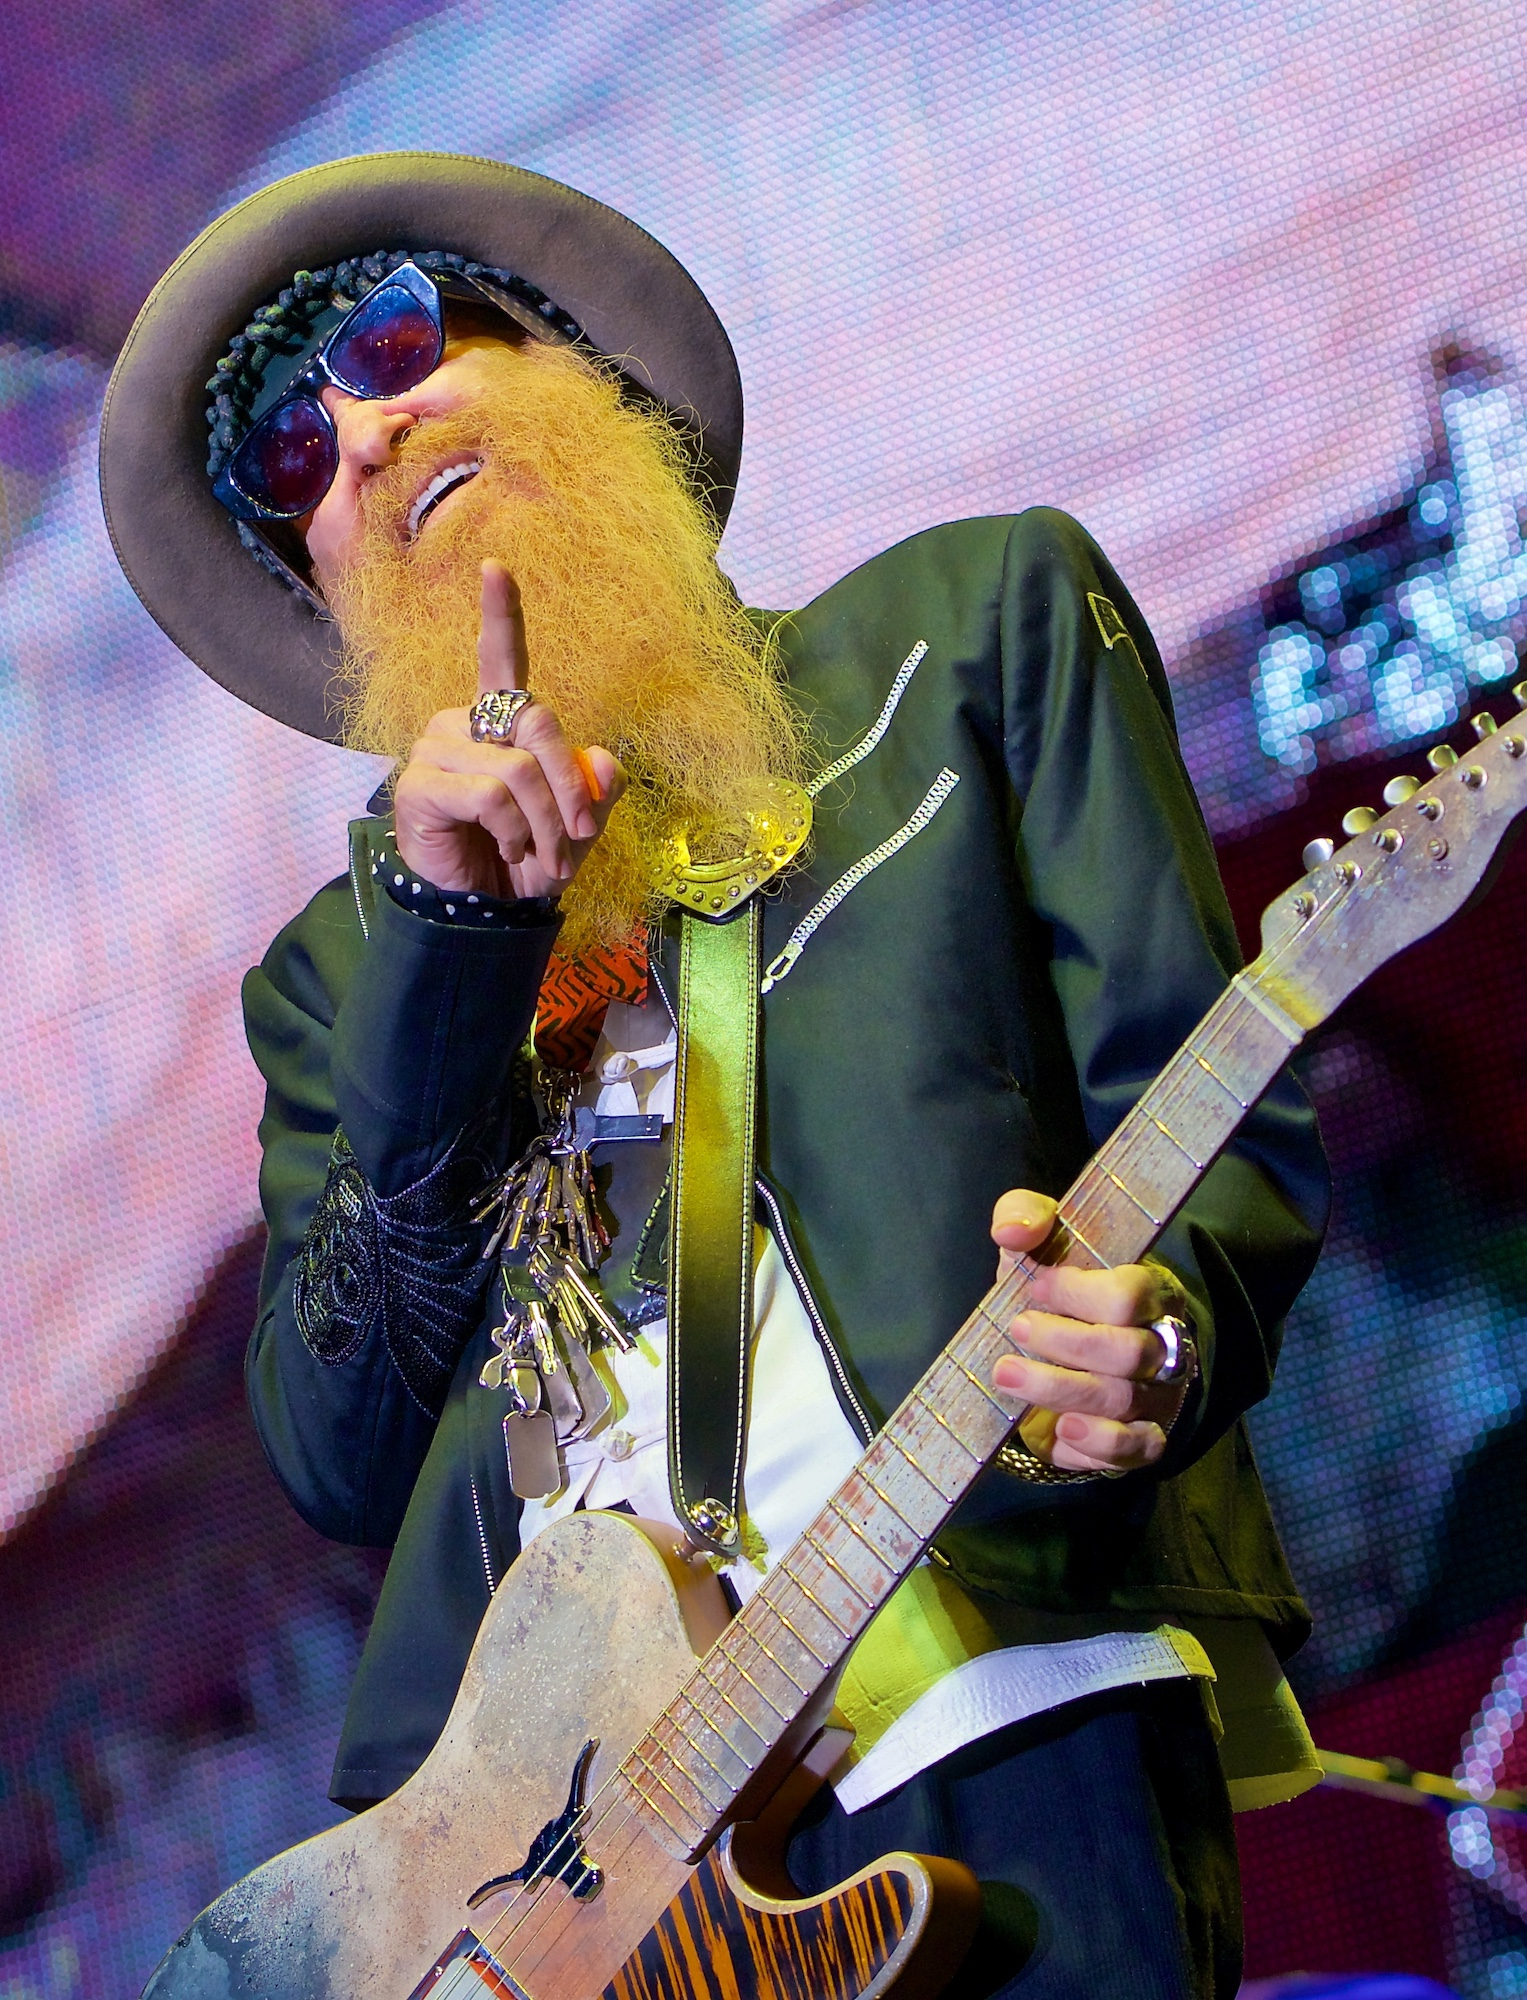 Billy Gibbons performs with ZZ Top at Constellation Field, Sugar Land, TX. October 20, 2012